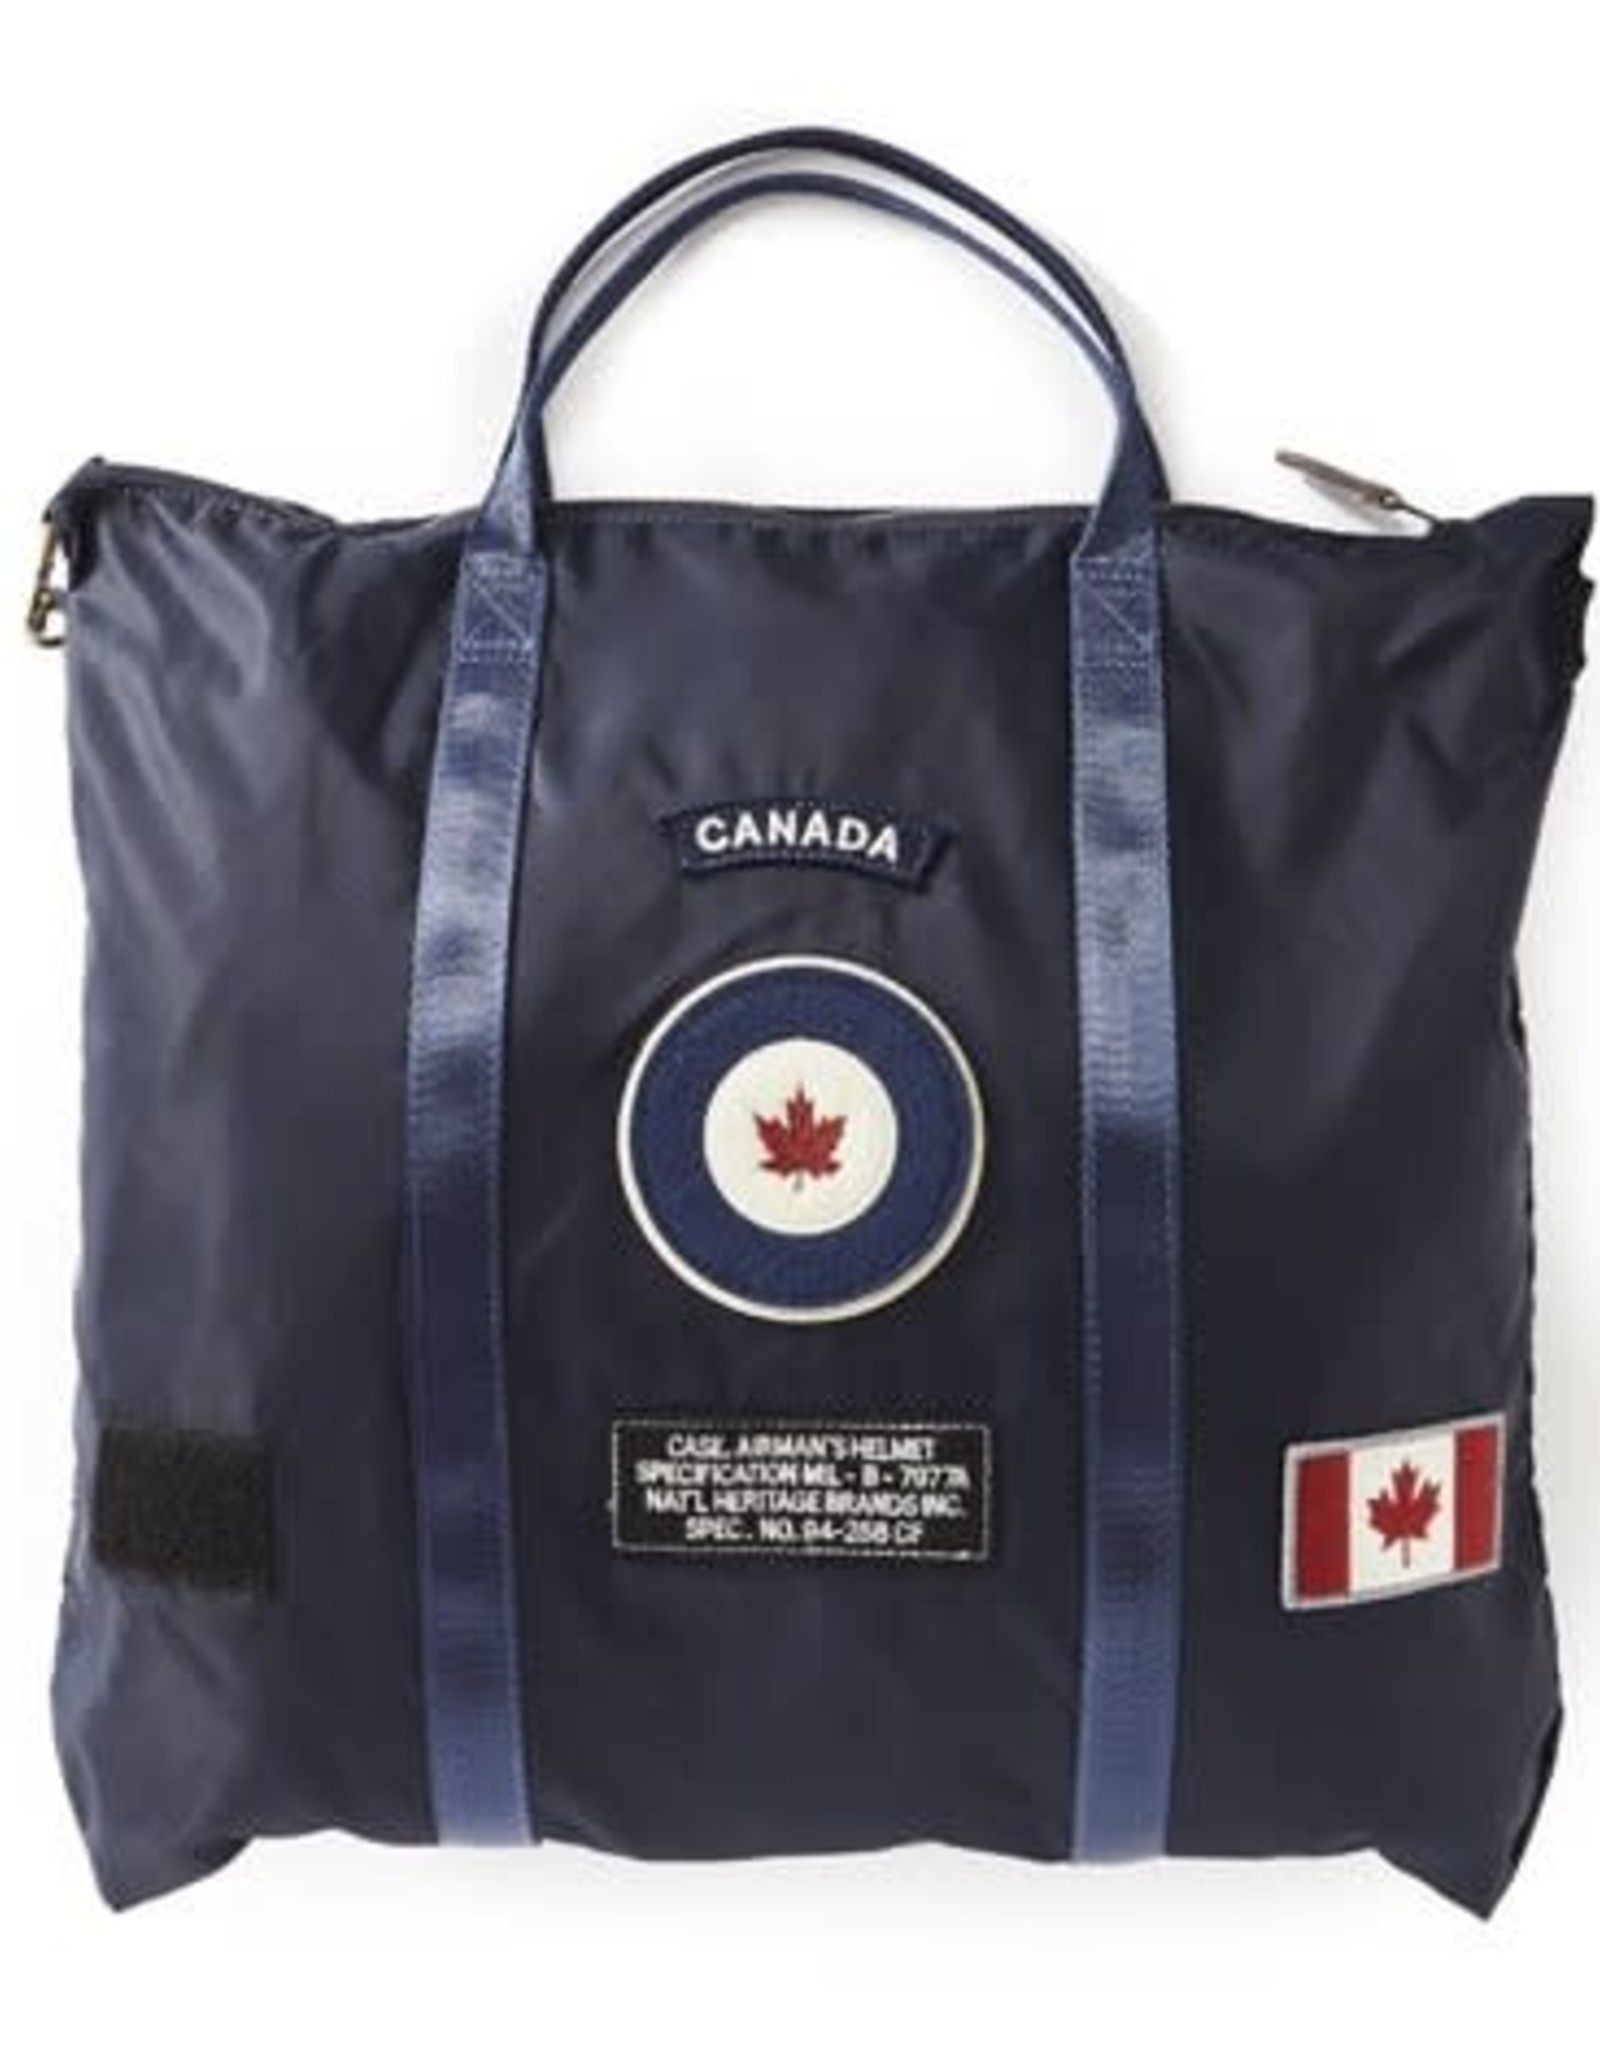 RED CANOE Red Canoe RCAF Helmet Bag